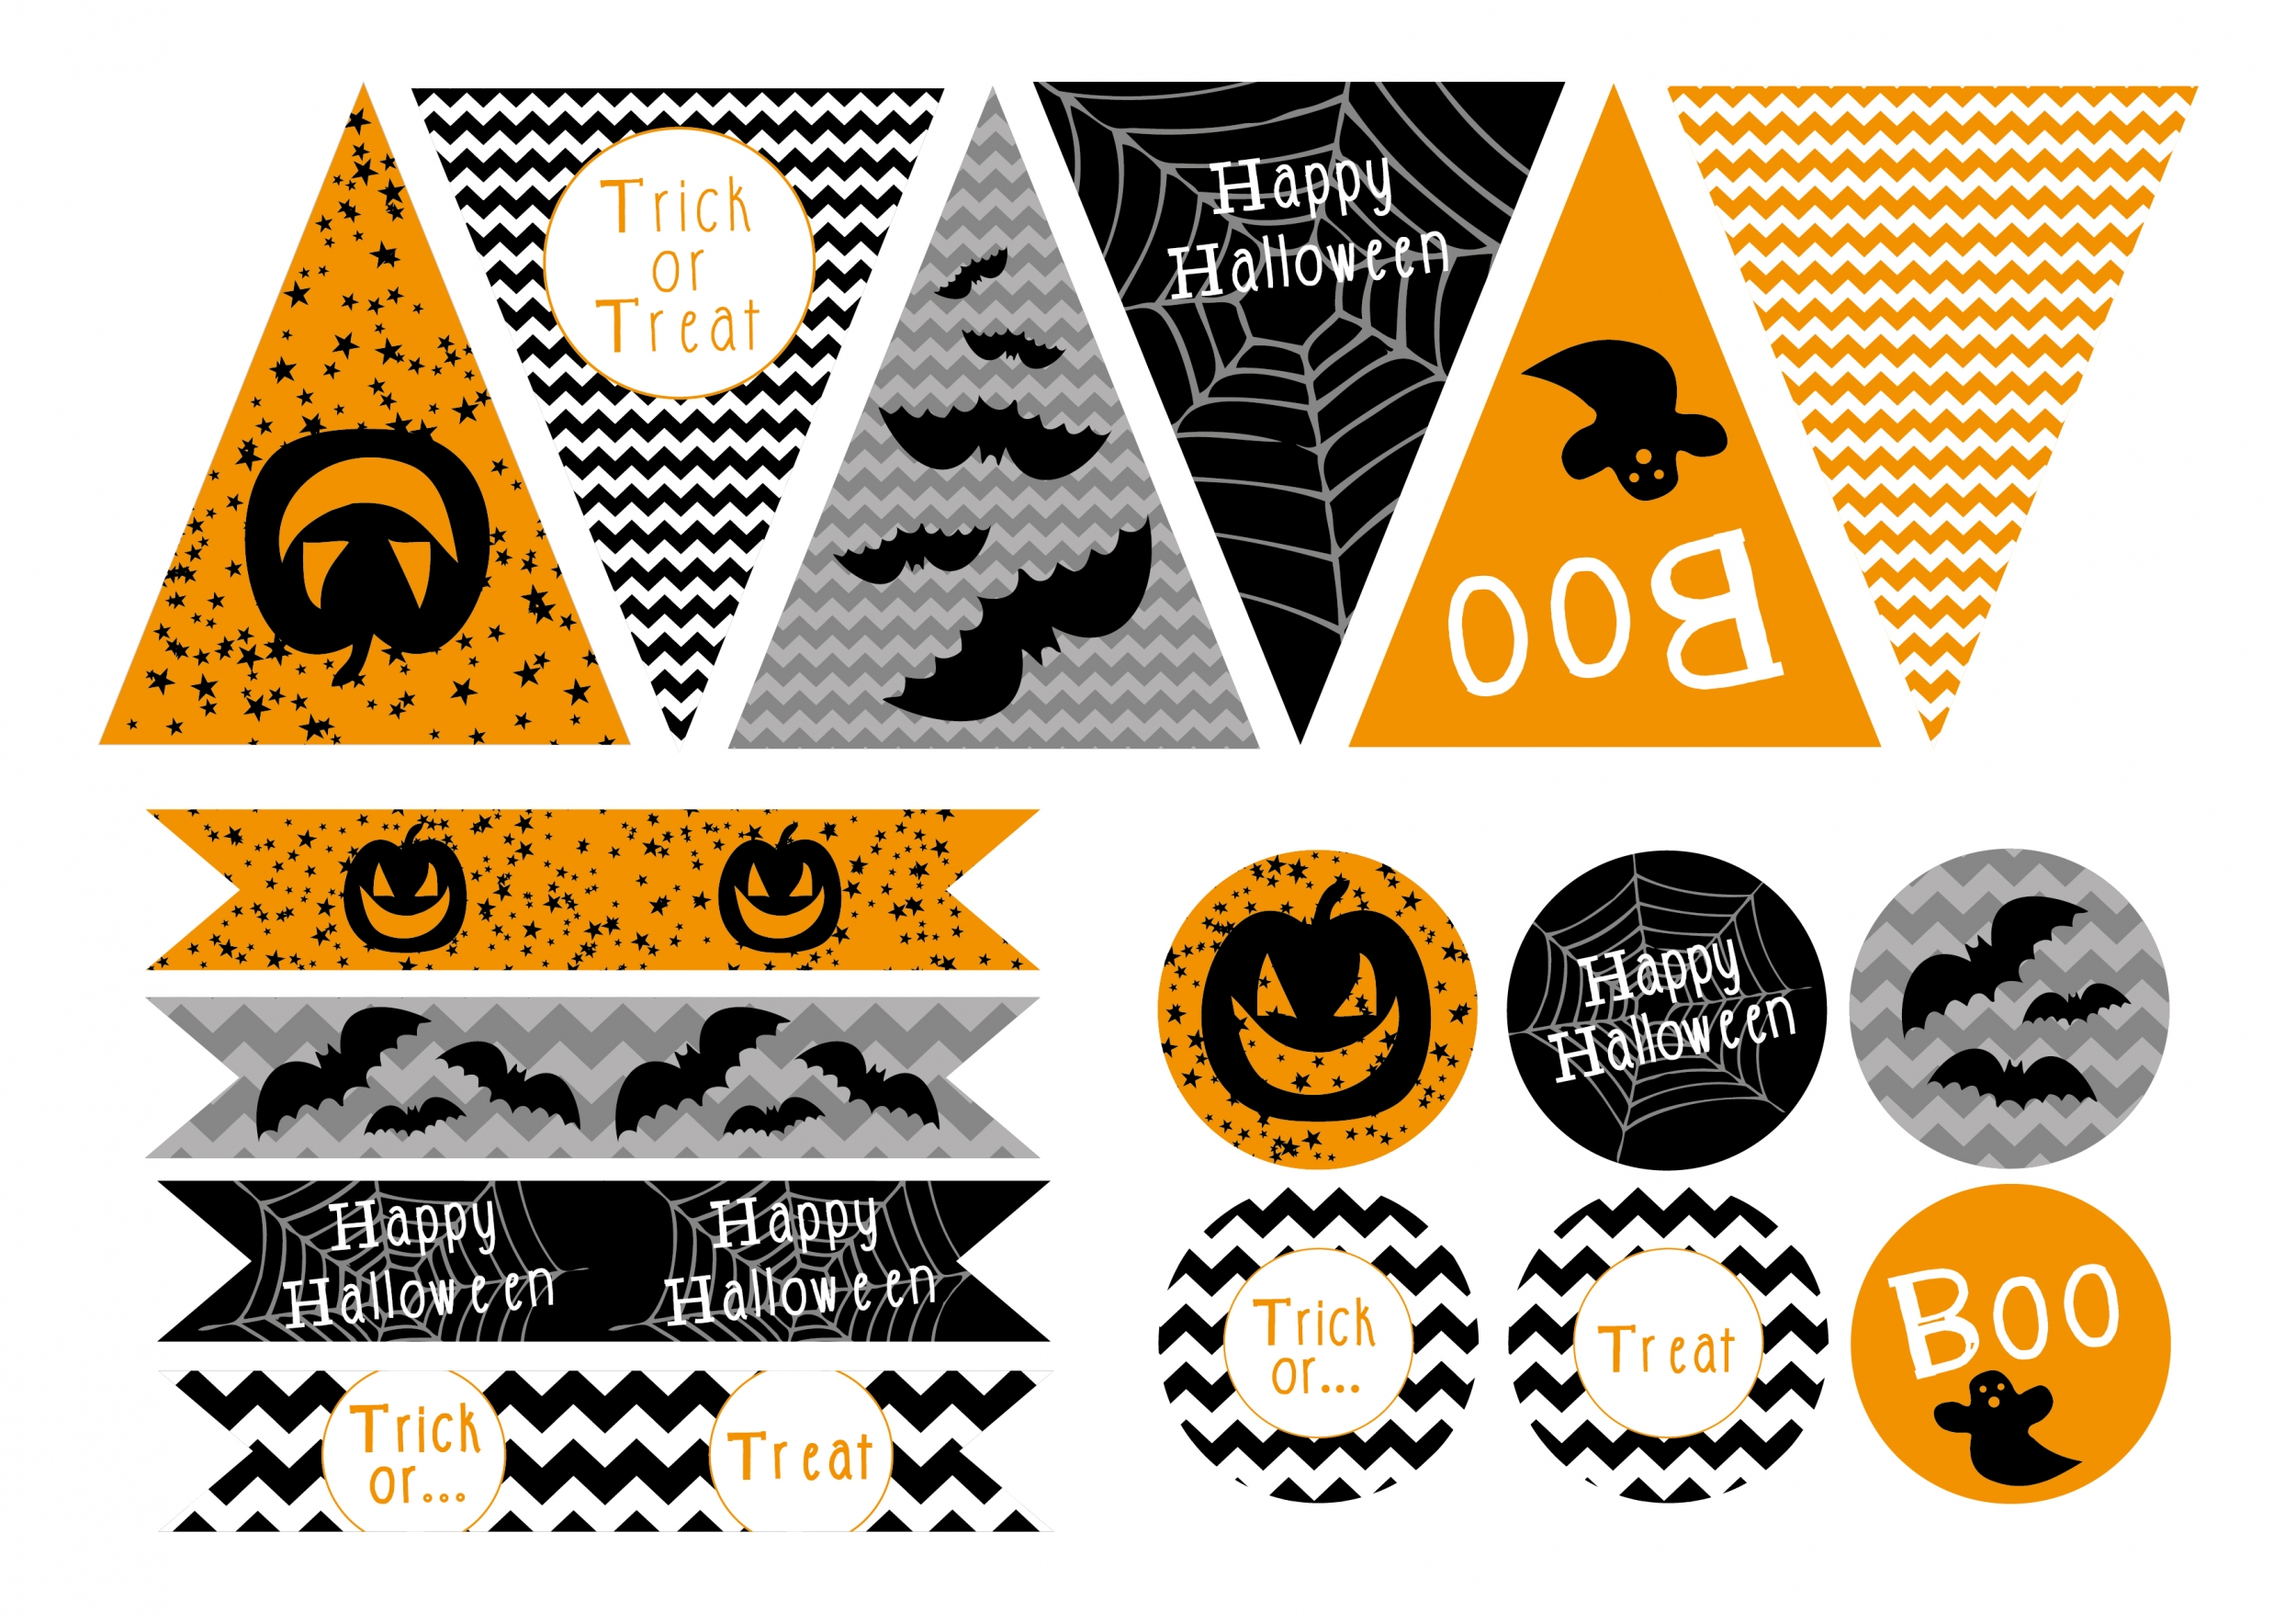 D co halloween a faire soi meme printable gratuit a imprimer - Faire deco halloween ...